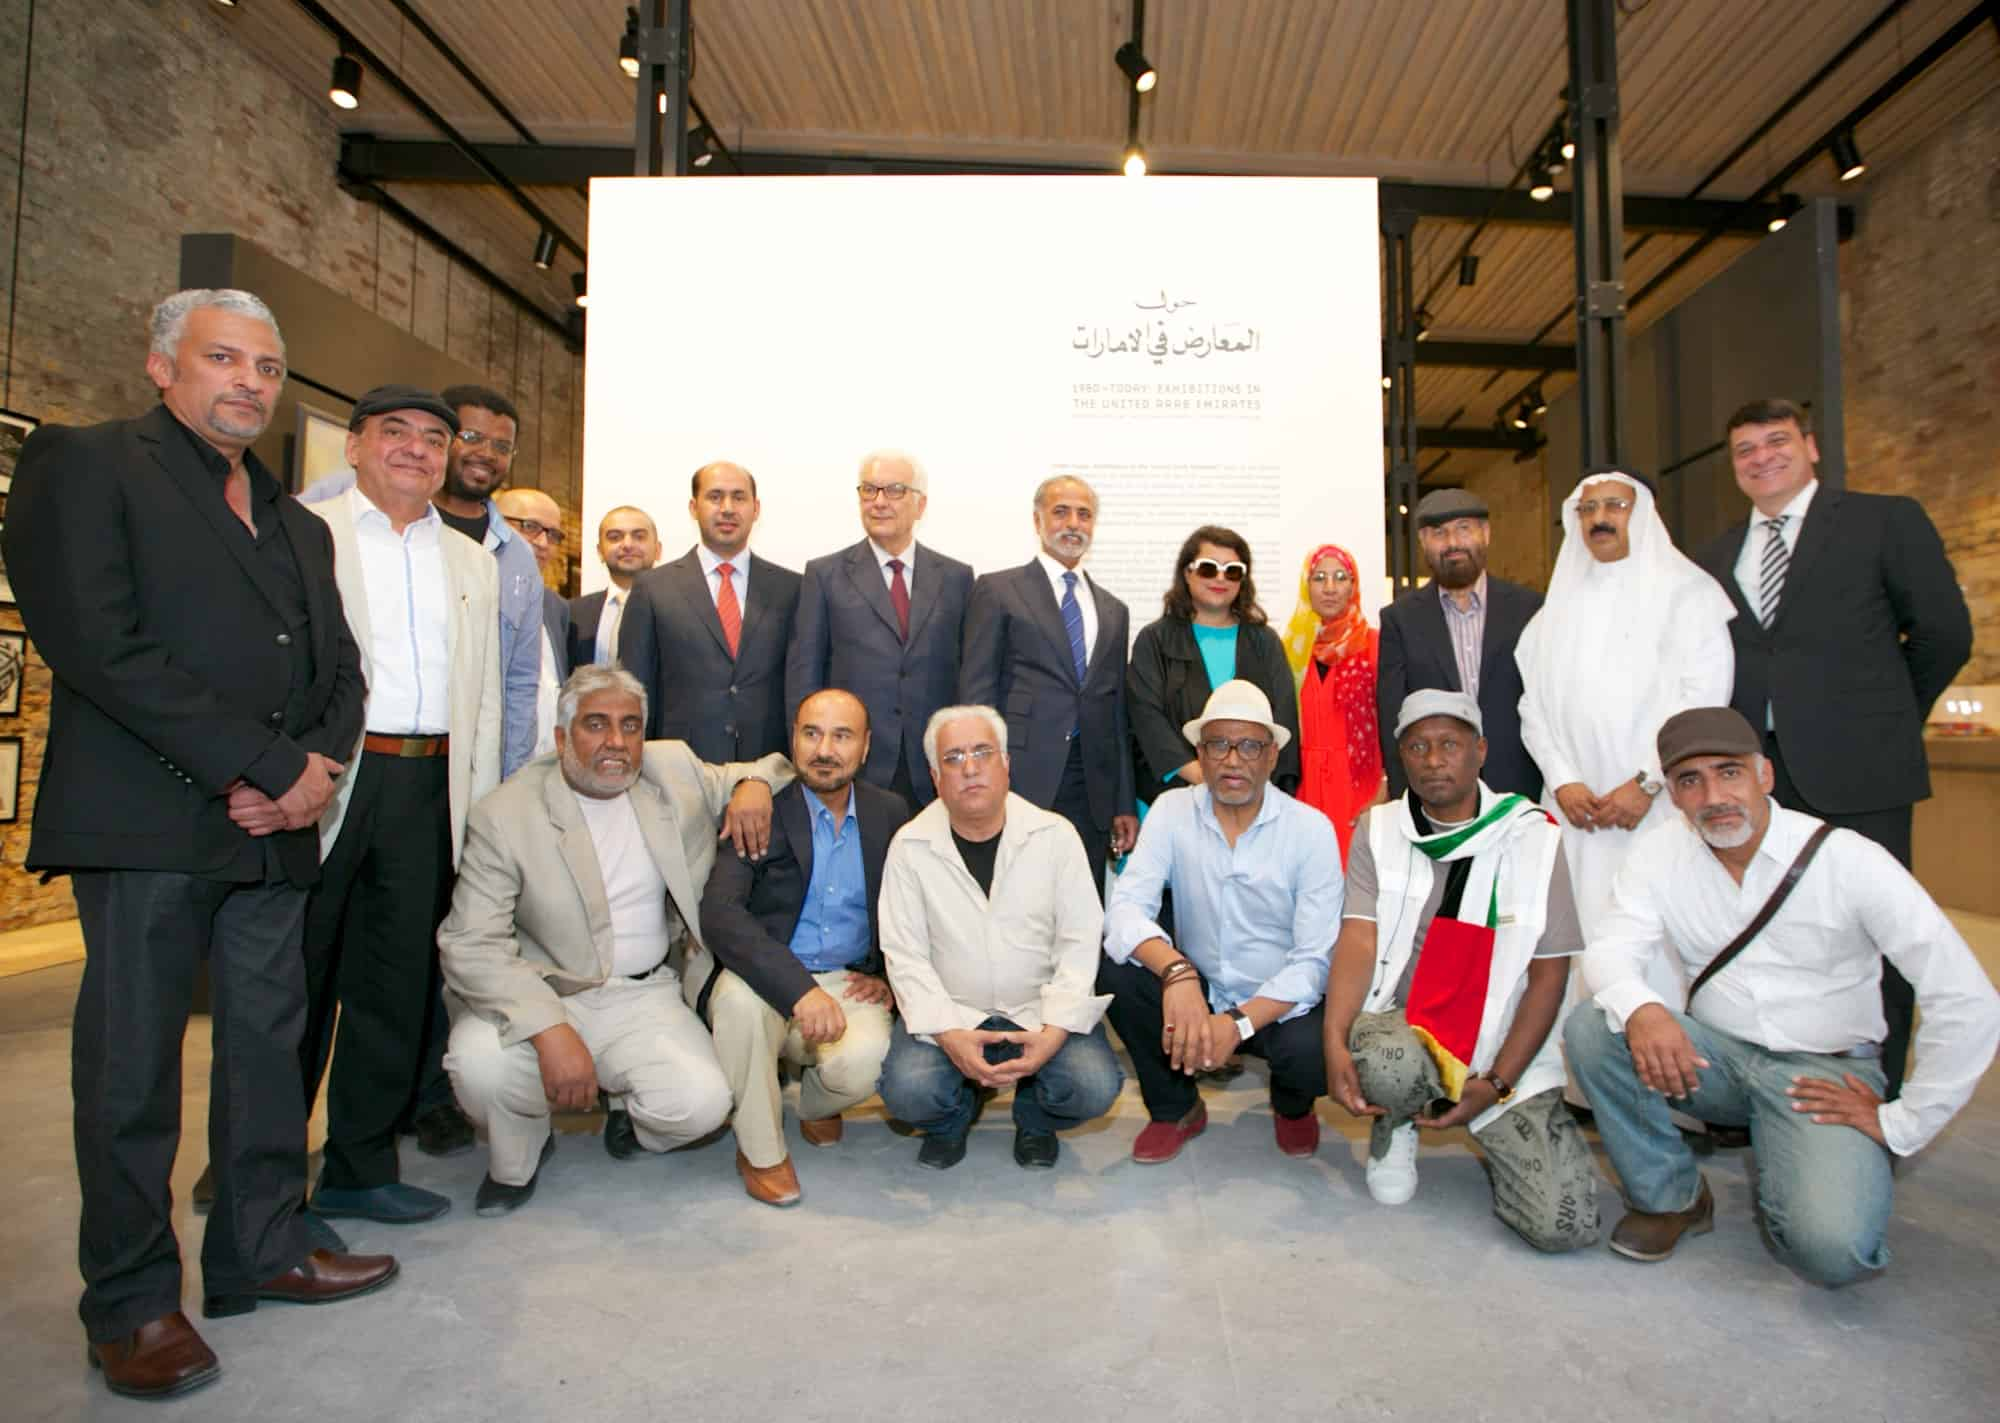 H.E Sheikh Nahayan Mabarak Al Nahayan; Minister of Culture, Youth and Community Development; H.E. Saqer Al Raisi, UAE Ambassador to Italy; Curator Sheikha Hoor Al Qasimi; Dr. Salvatore LaSpada, Executive Director of the Salama bint Hamdan Al Nahyan Foundation; with the participating artists.